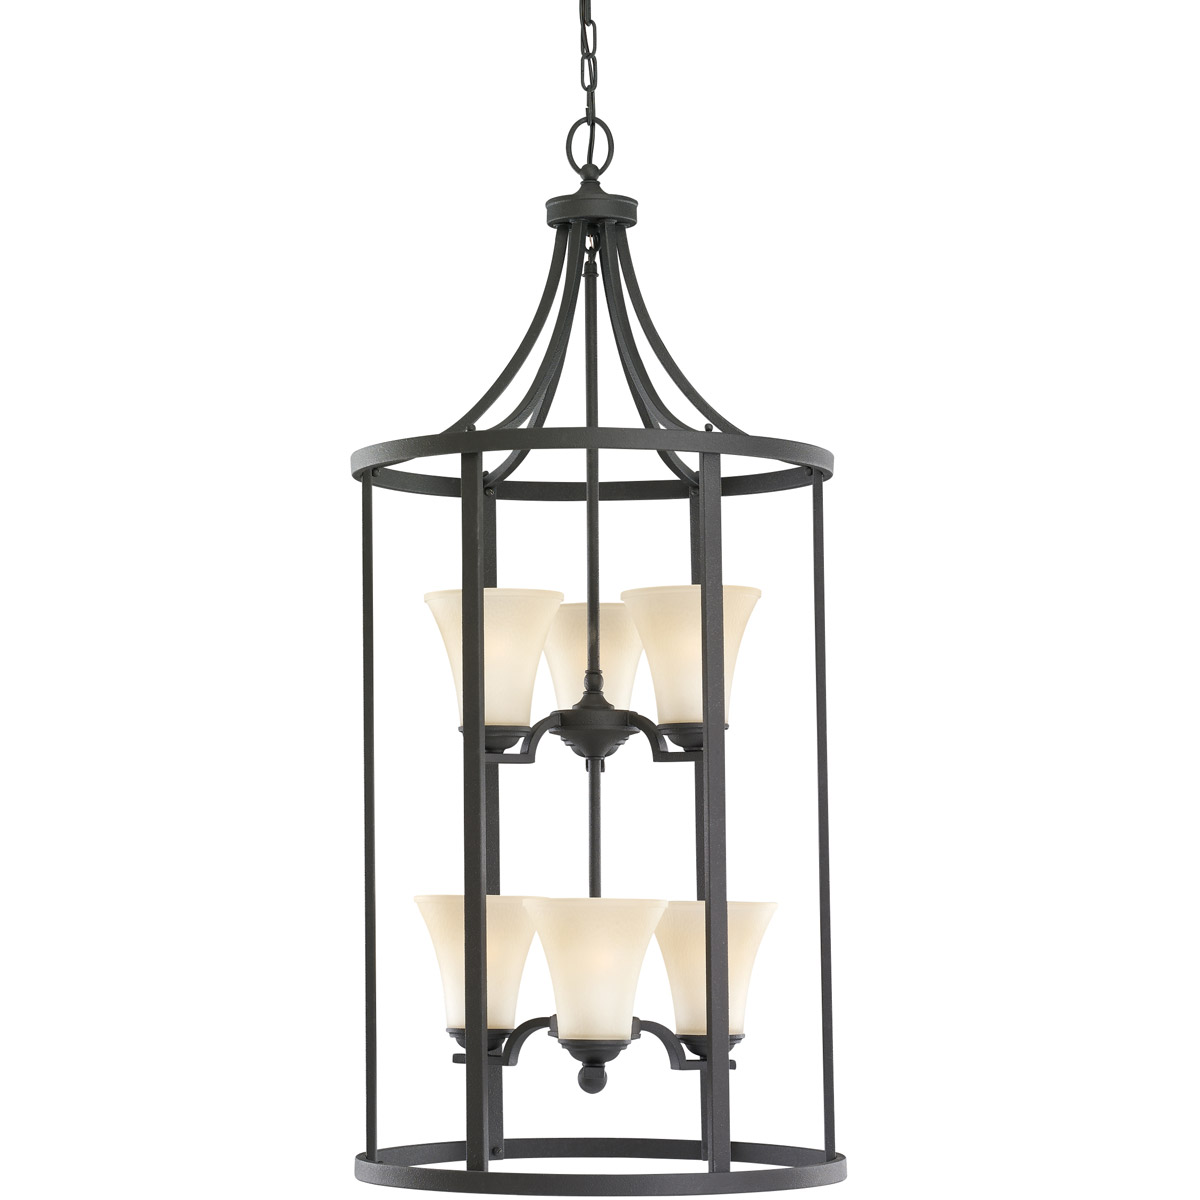 Sea Gull 51376BLE-839 Somerton 6 Light 19 inch Blacksmith Hall/Foyer Pendant Ceiling Light in Cafe Tint Glass, Fluorescent photo